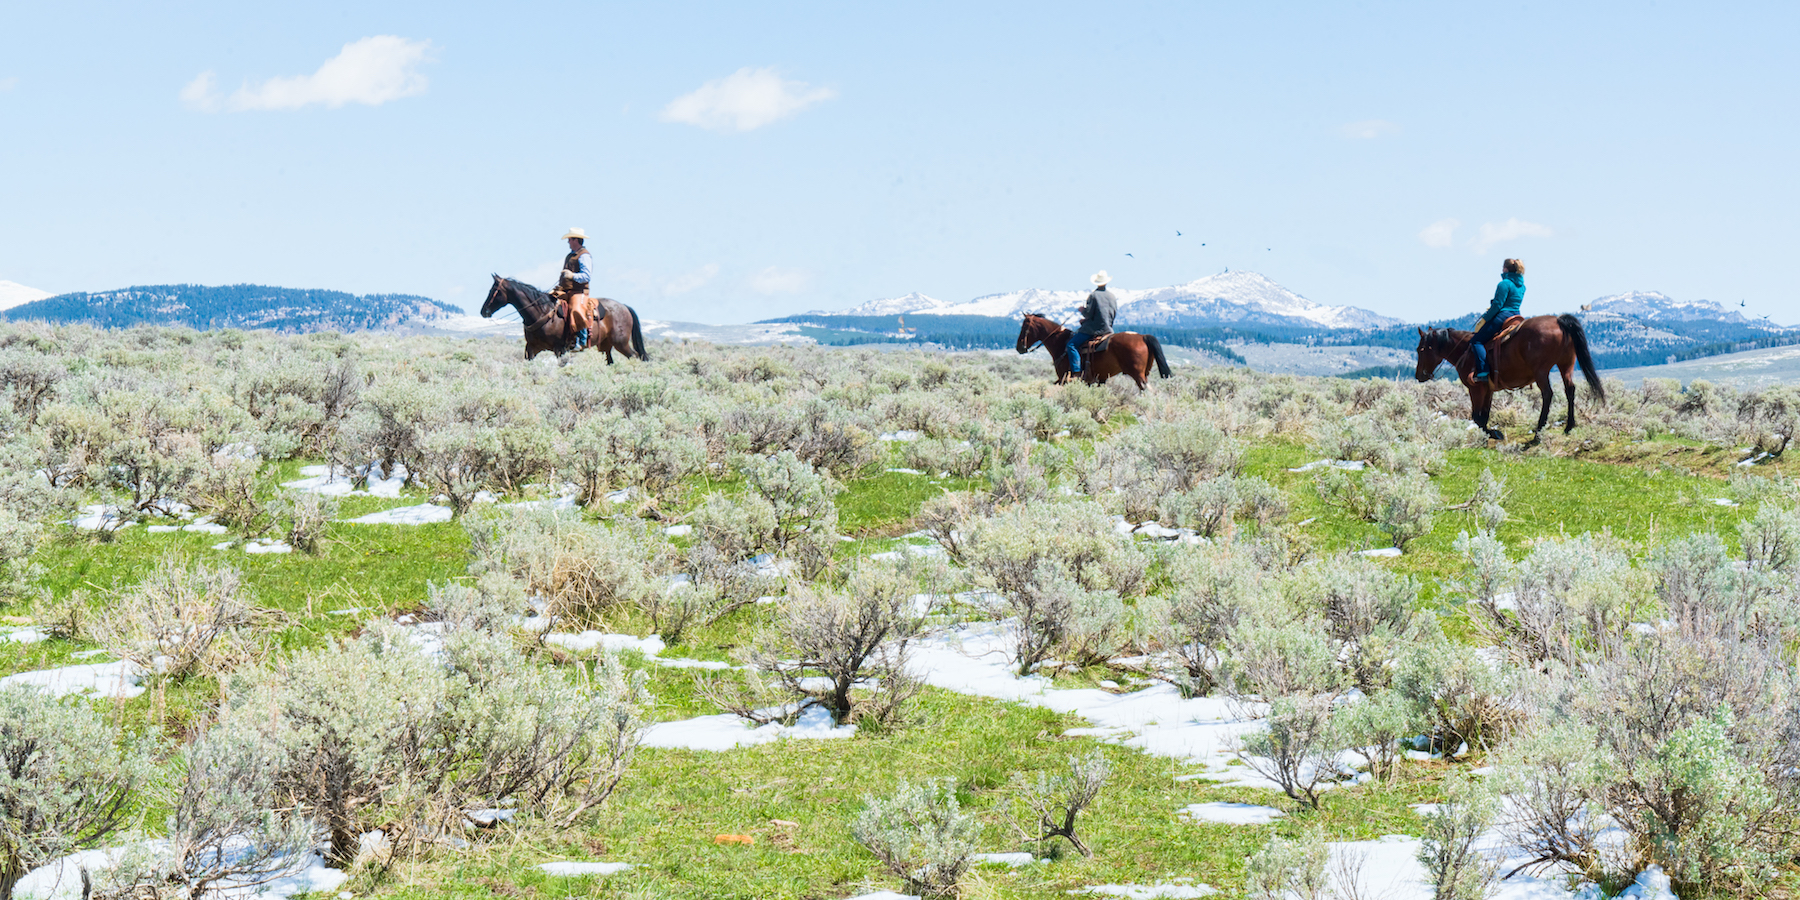 Visitors experience the spirit of the American West and five-star accommodations at Red Reflet Ranch.